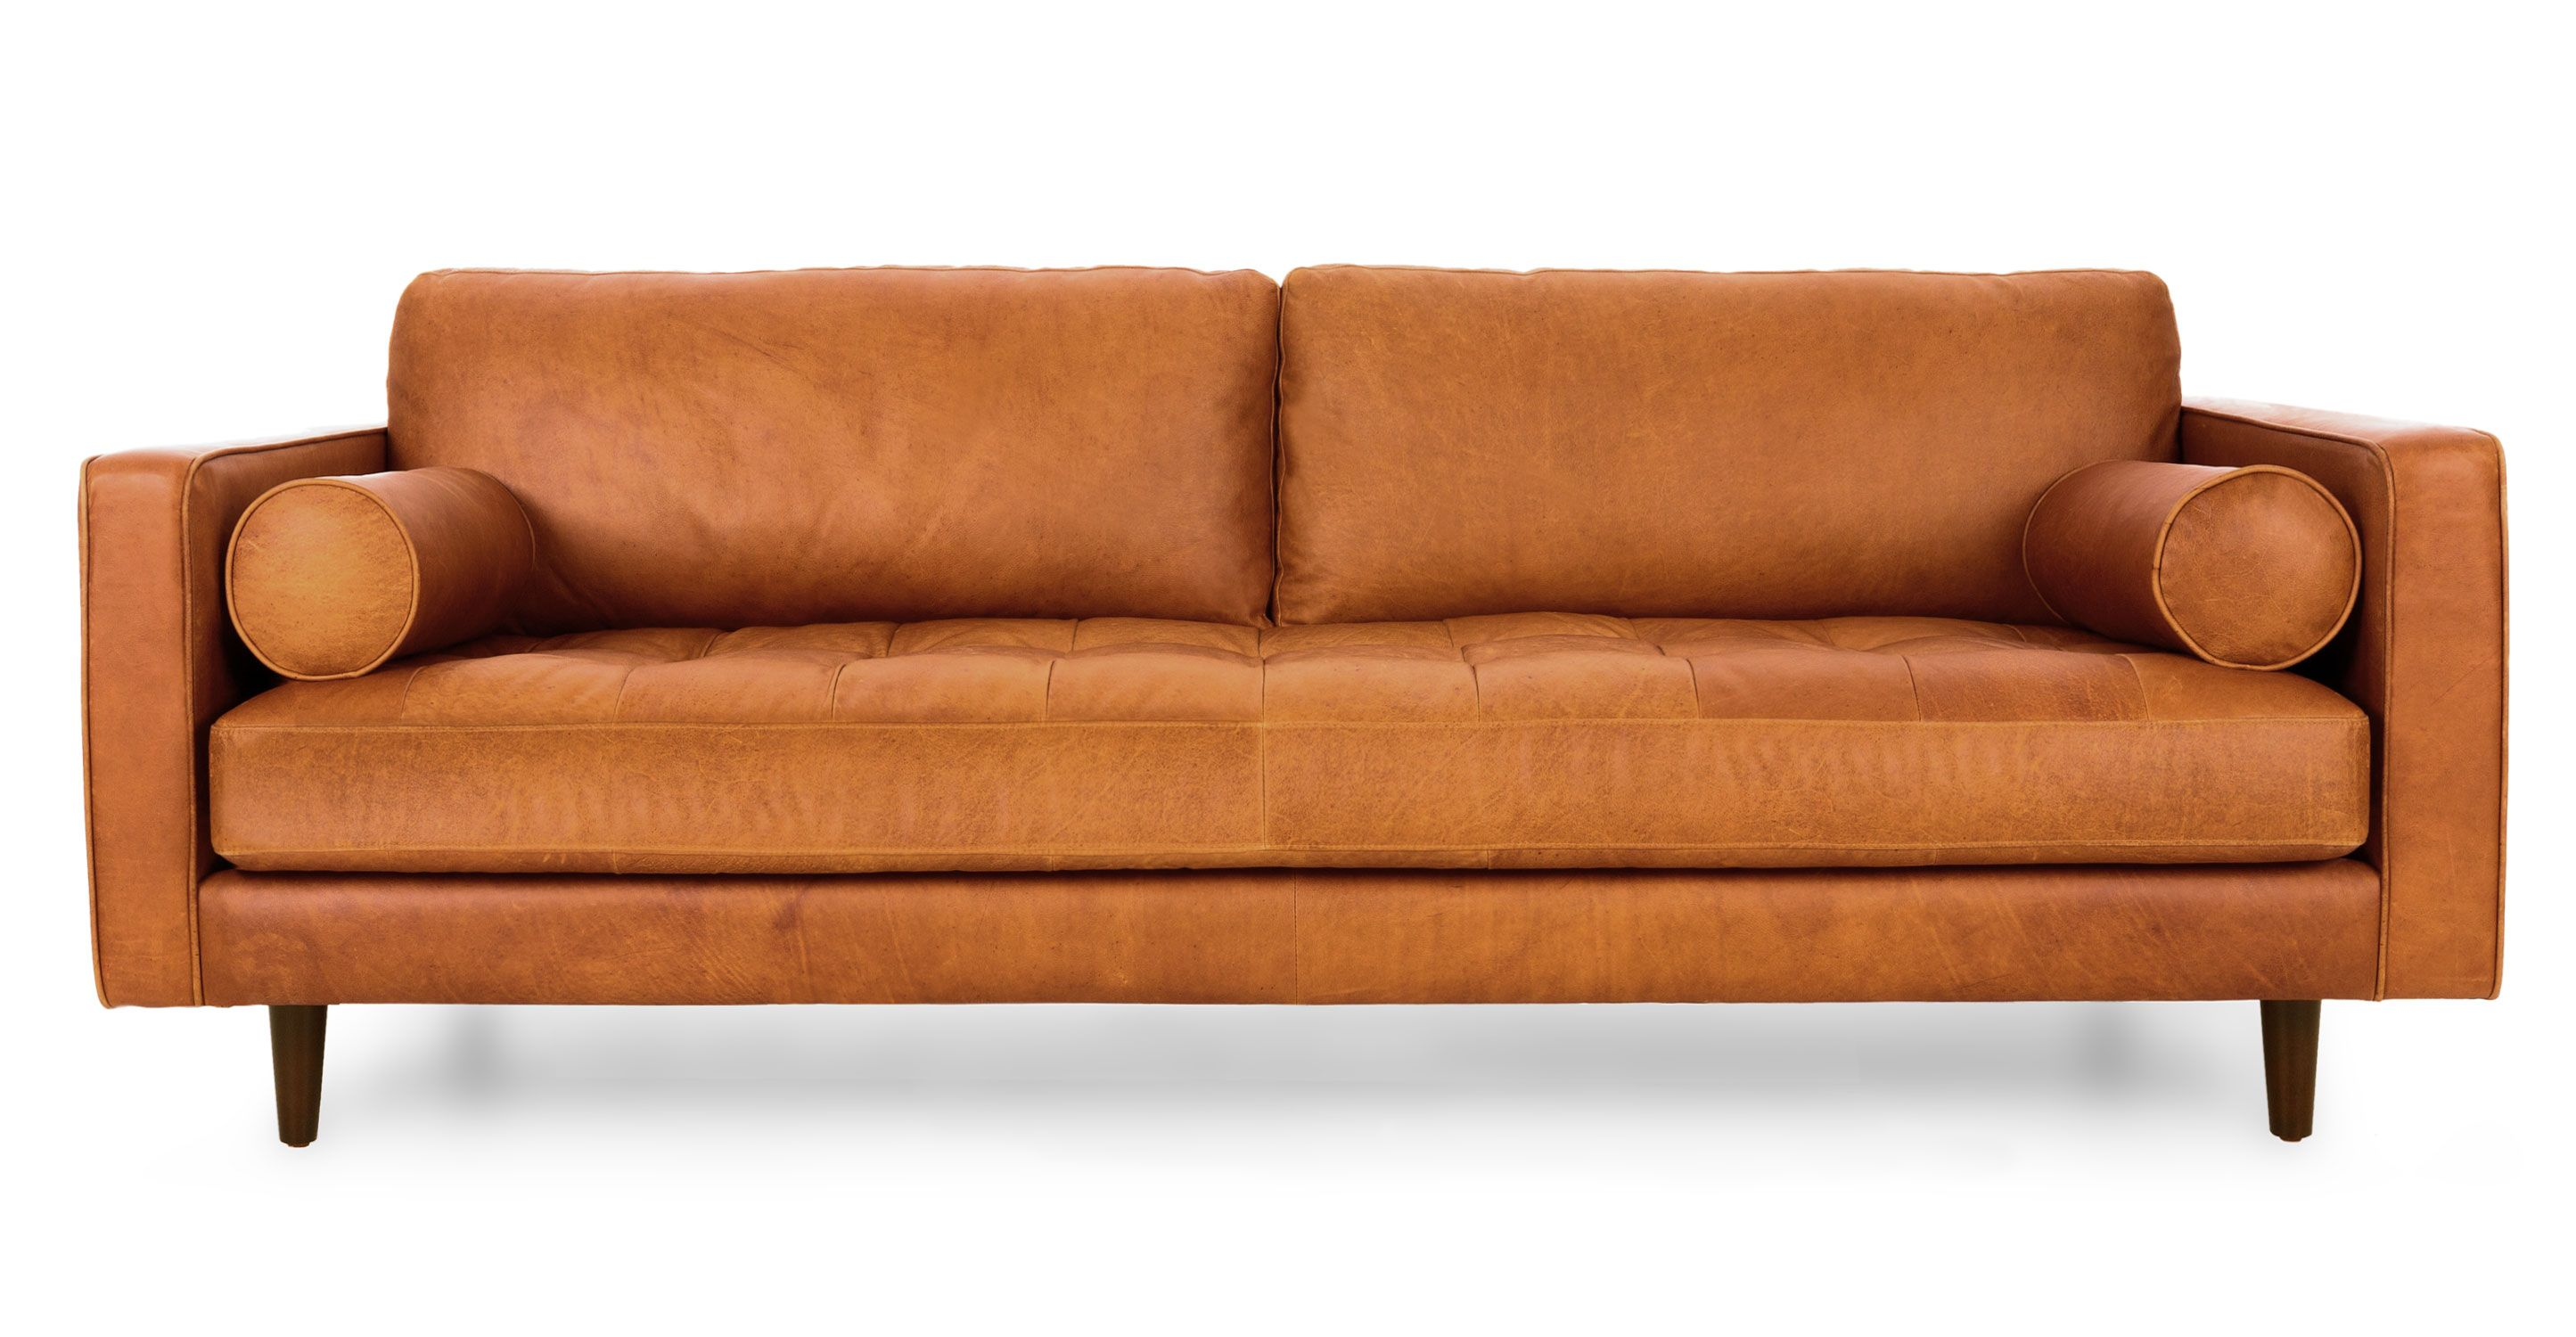 Tan brown leather sofa italian leather article sven for Modern loveseat